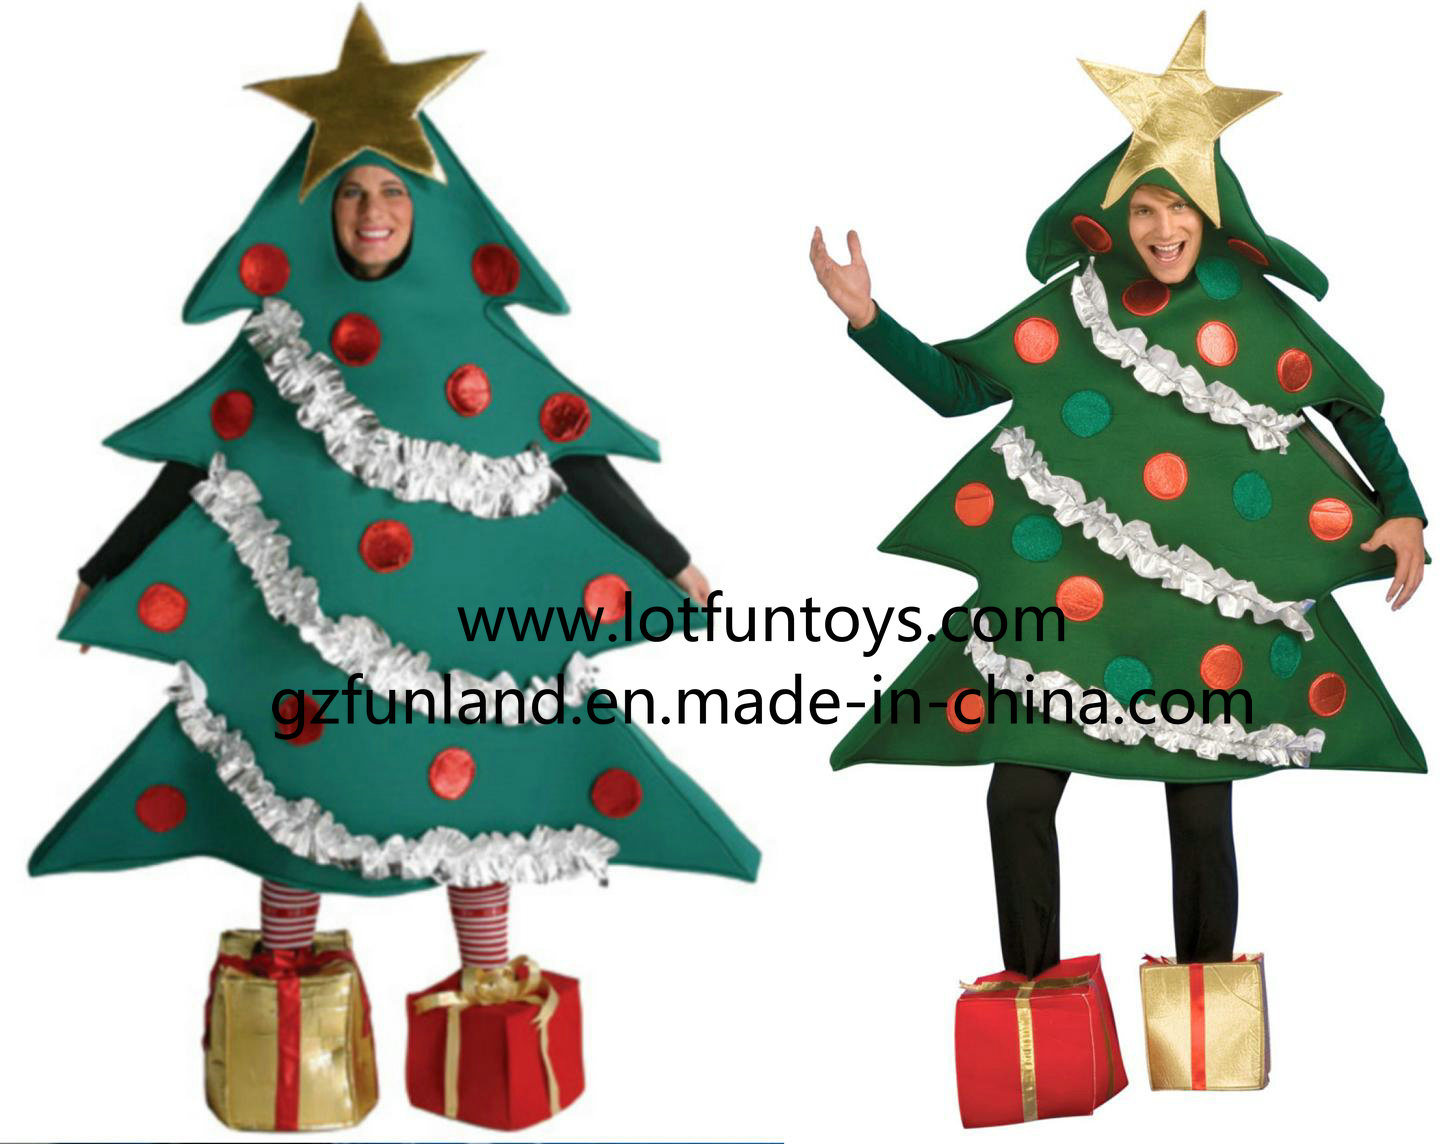 China Customized Christmas Tree Mascot Costume - China Christmas Costume Mascot Costume  sc 1 st  Guangzhou Funland Amusement Co. Ltd. & China Customized Christmas Tree Mascot Costume - China Christmas ...